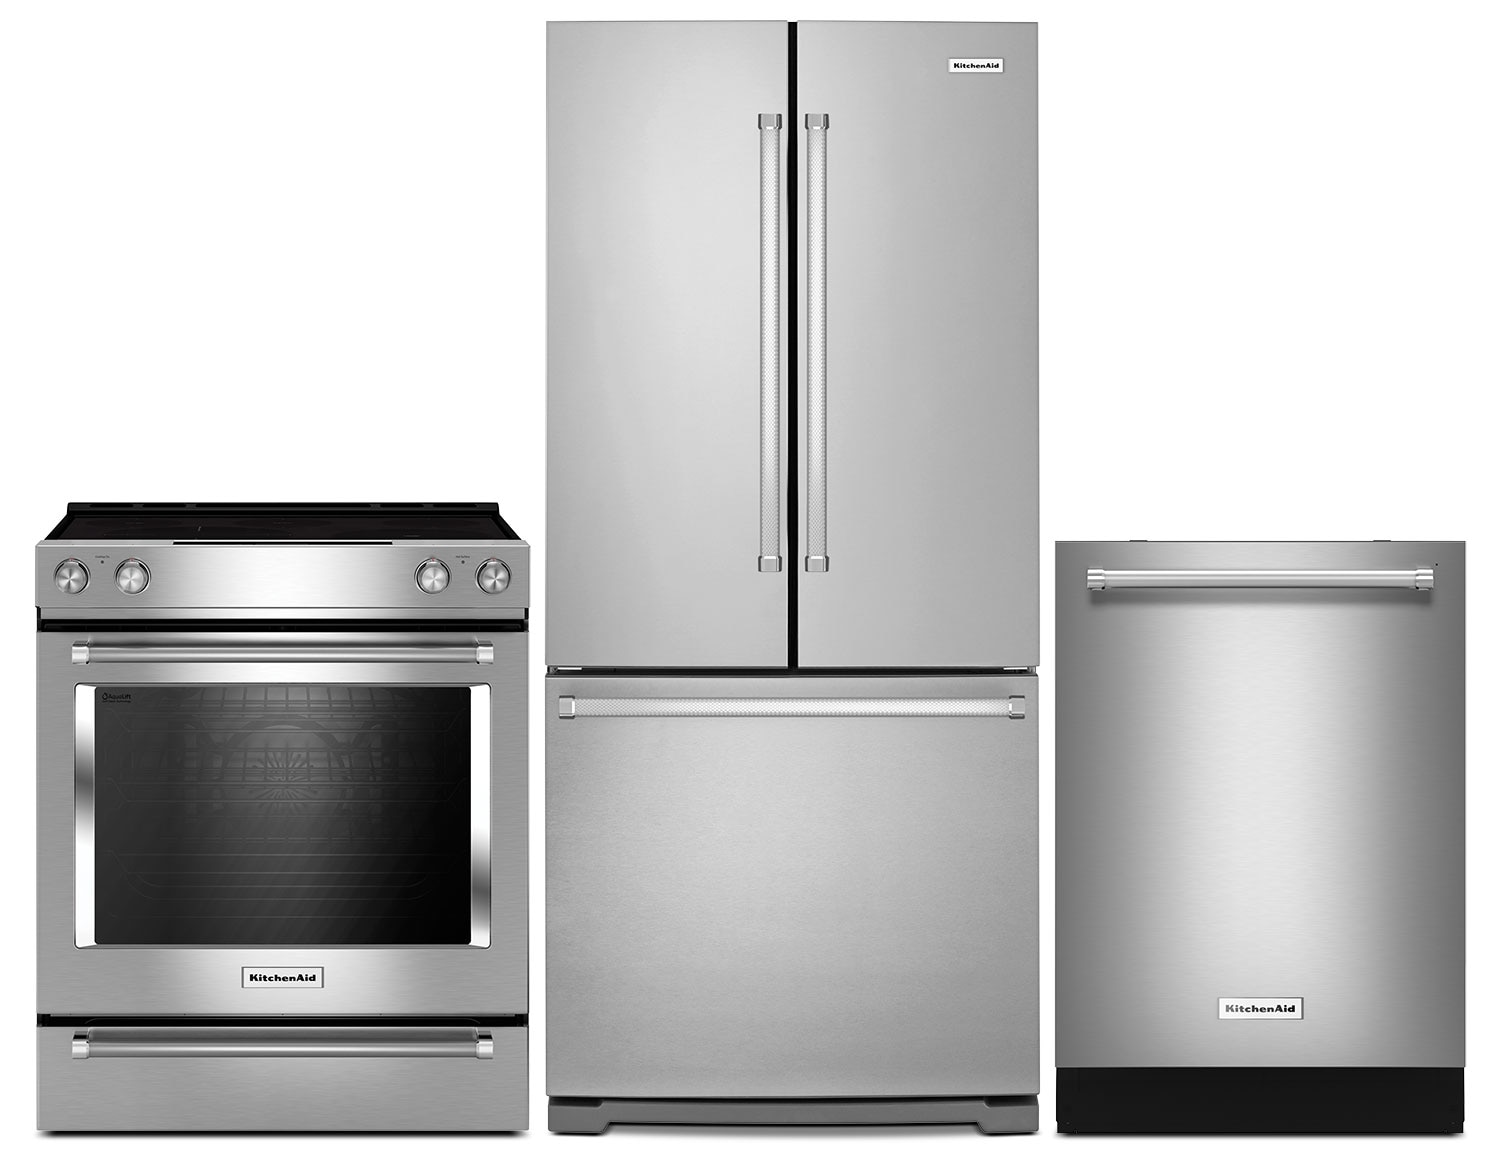 "Cooking Products - KitchenAid 22.1 Cu. Ft. Refrigerator, Slide-In Electric Range and 24"" Dishwasher - Stainless Steel"